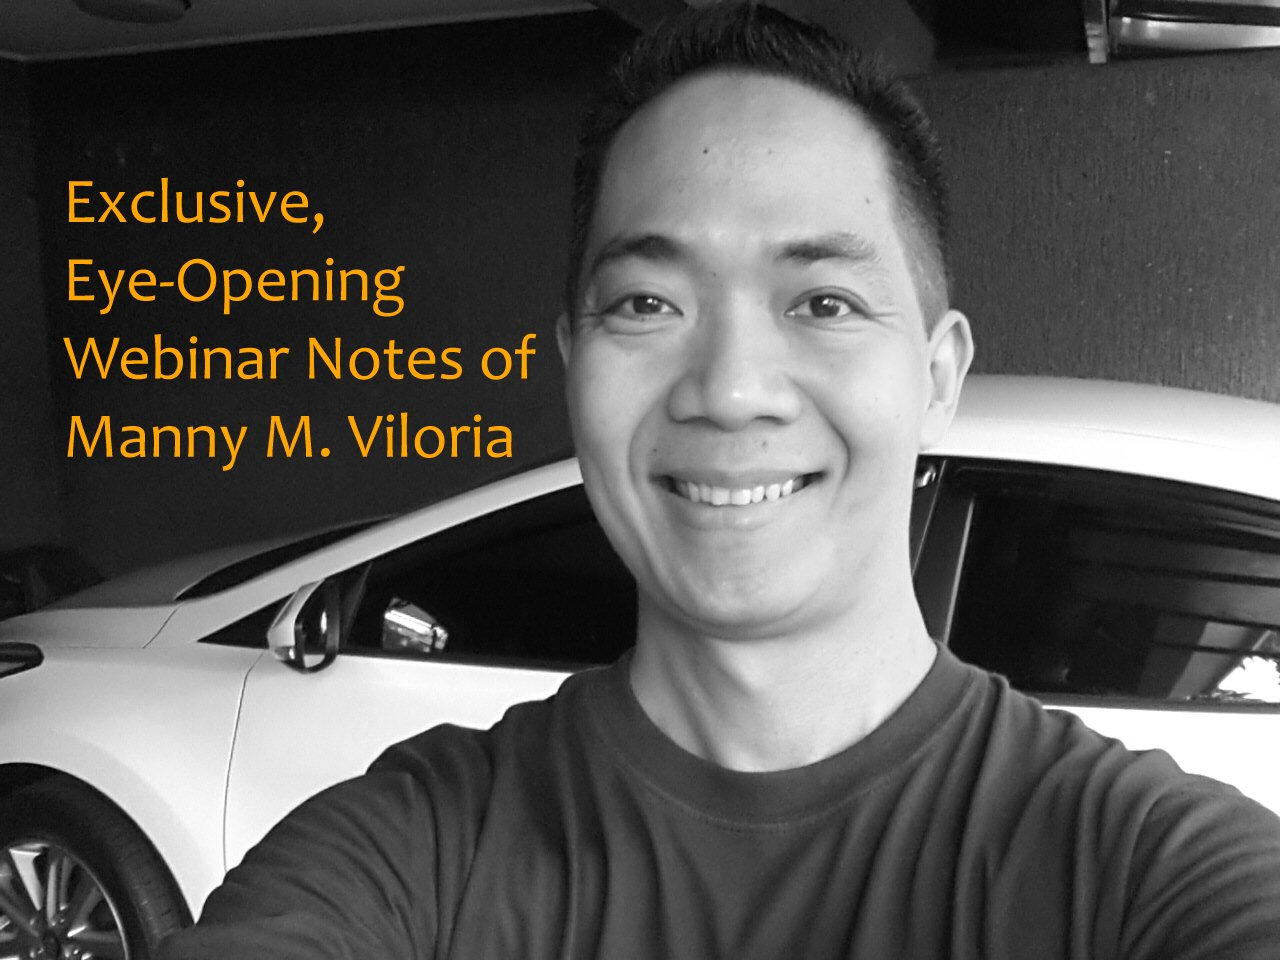 webinar-notes-manny-viloria-exclusive